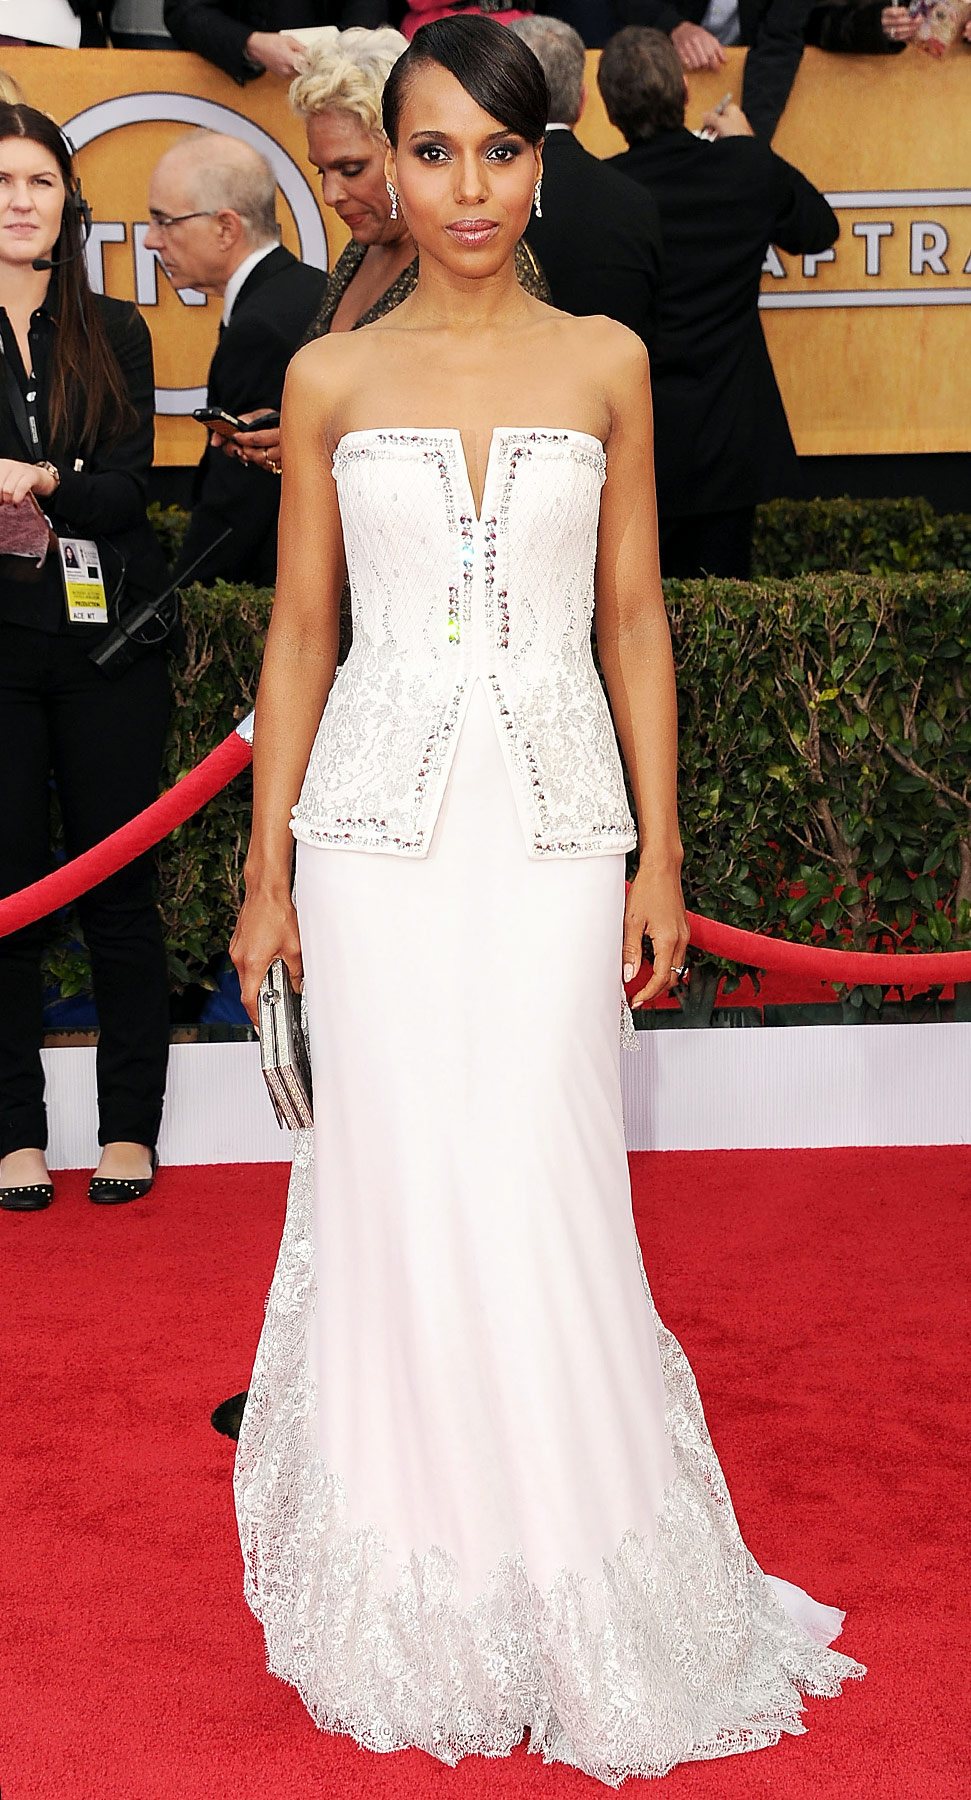 On the red carpet at L.A.'s Shrine Auditorium for the Screen Actors Guild Awards, Washington was the picture of modern elegance in a strapless white Rodarte gown with an embellished corseted bodice and a ruffled silvery lace hem.